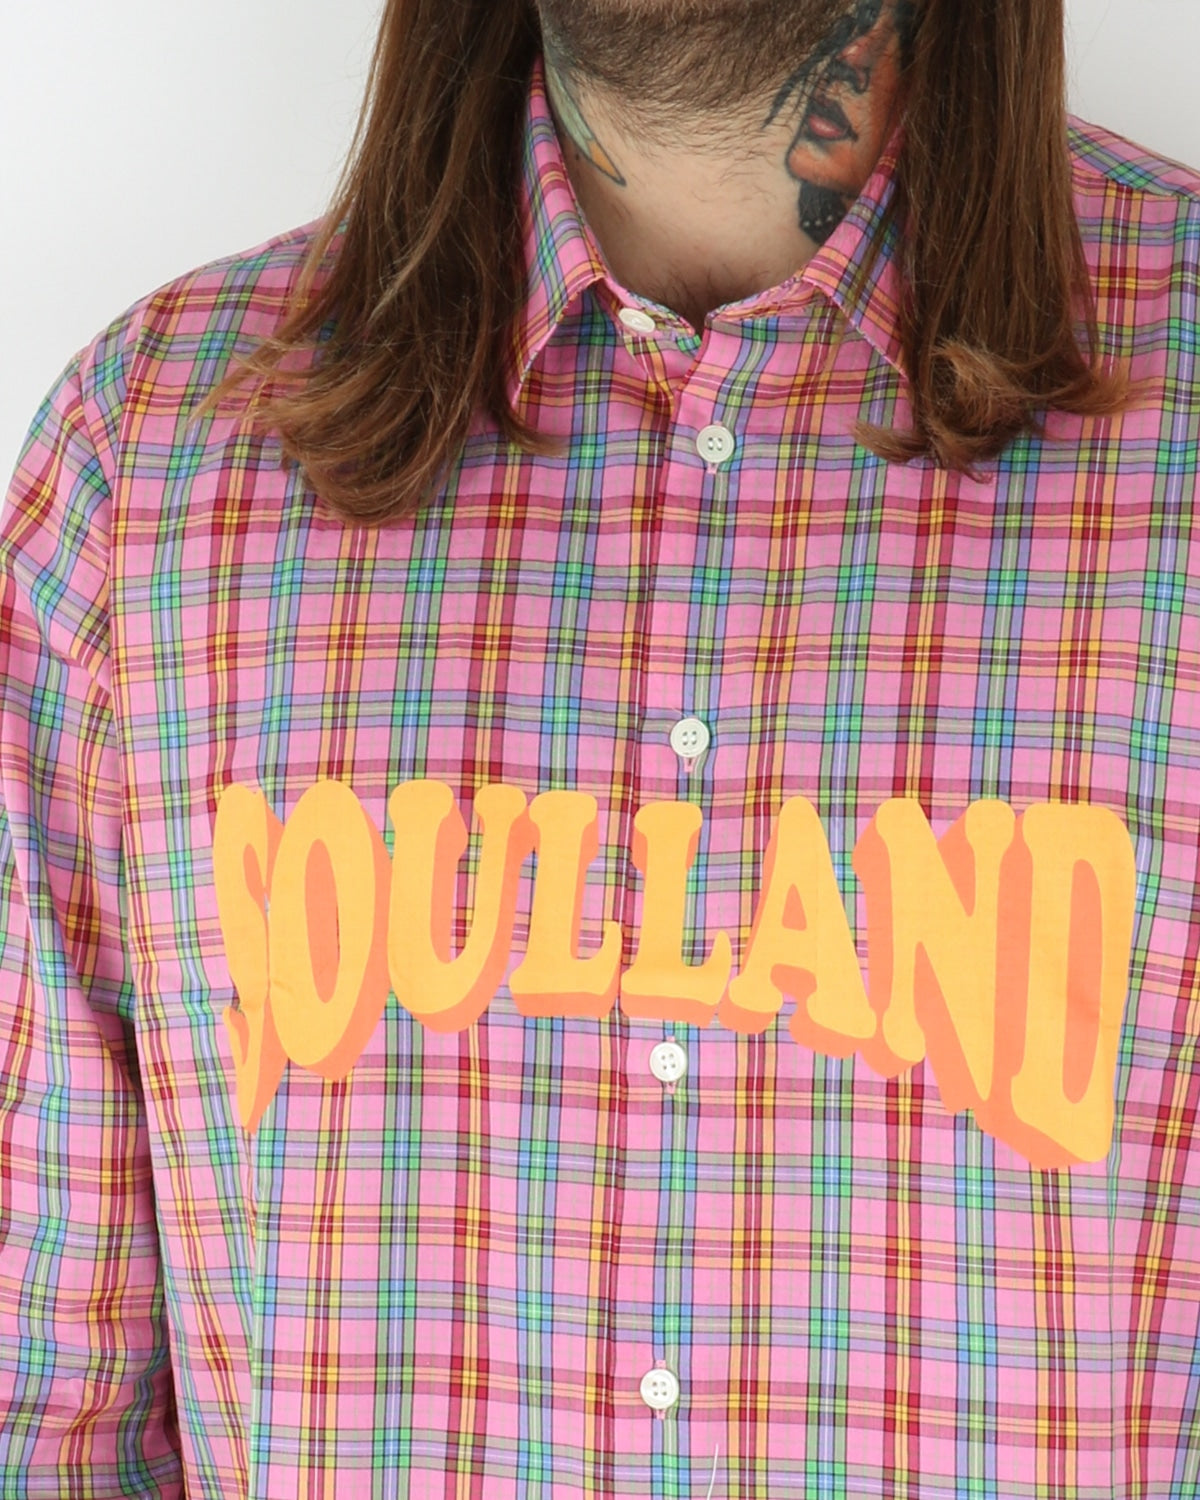 soulland_saul checked shirt_pink_1_3